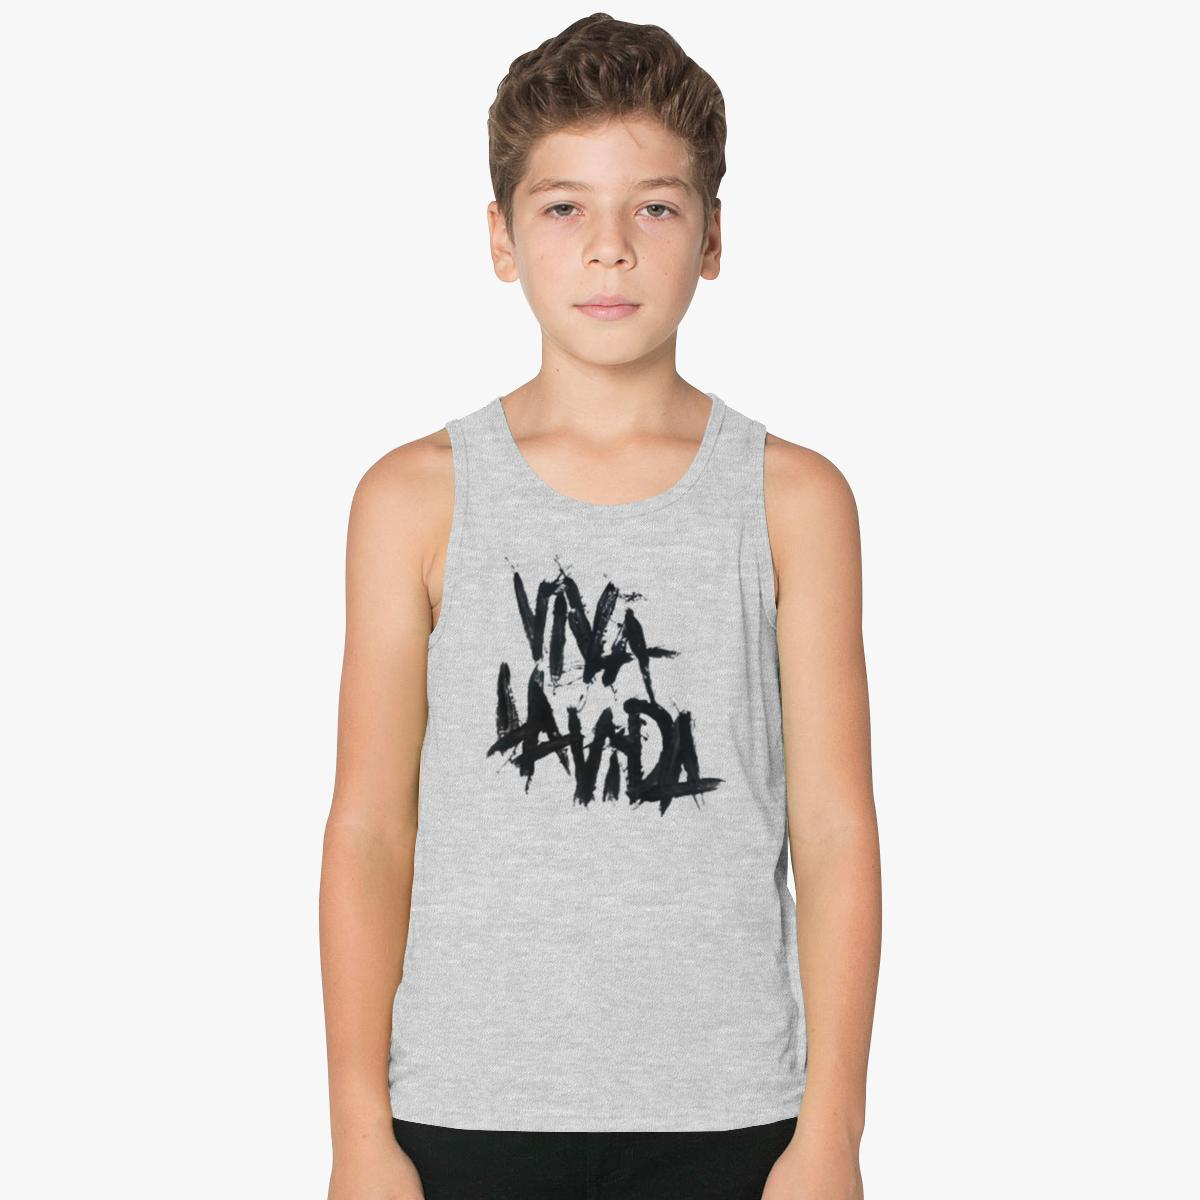 Sale Shop For Printed Racerback Top - sisters by VIDA VIDA To Buy Shipping Discount Sale MZ8QJE2KOw